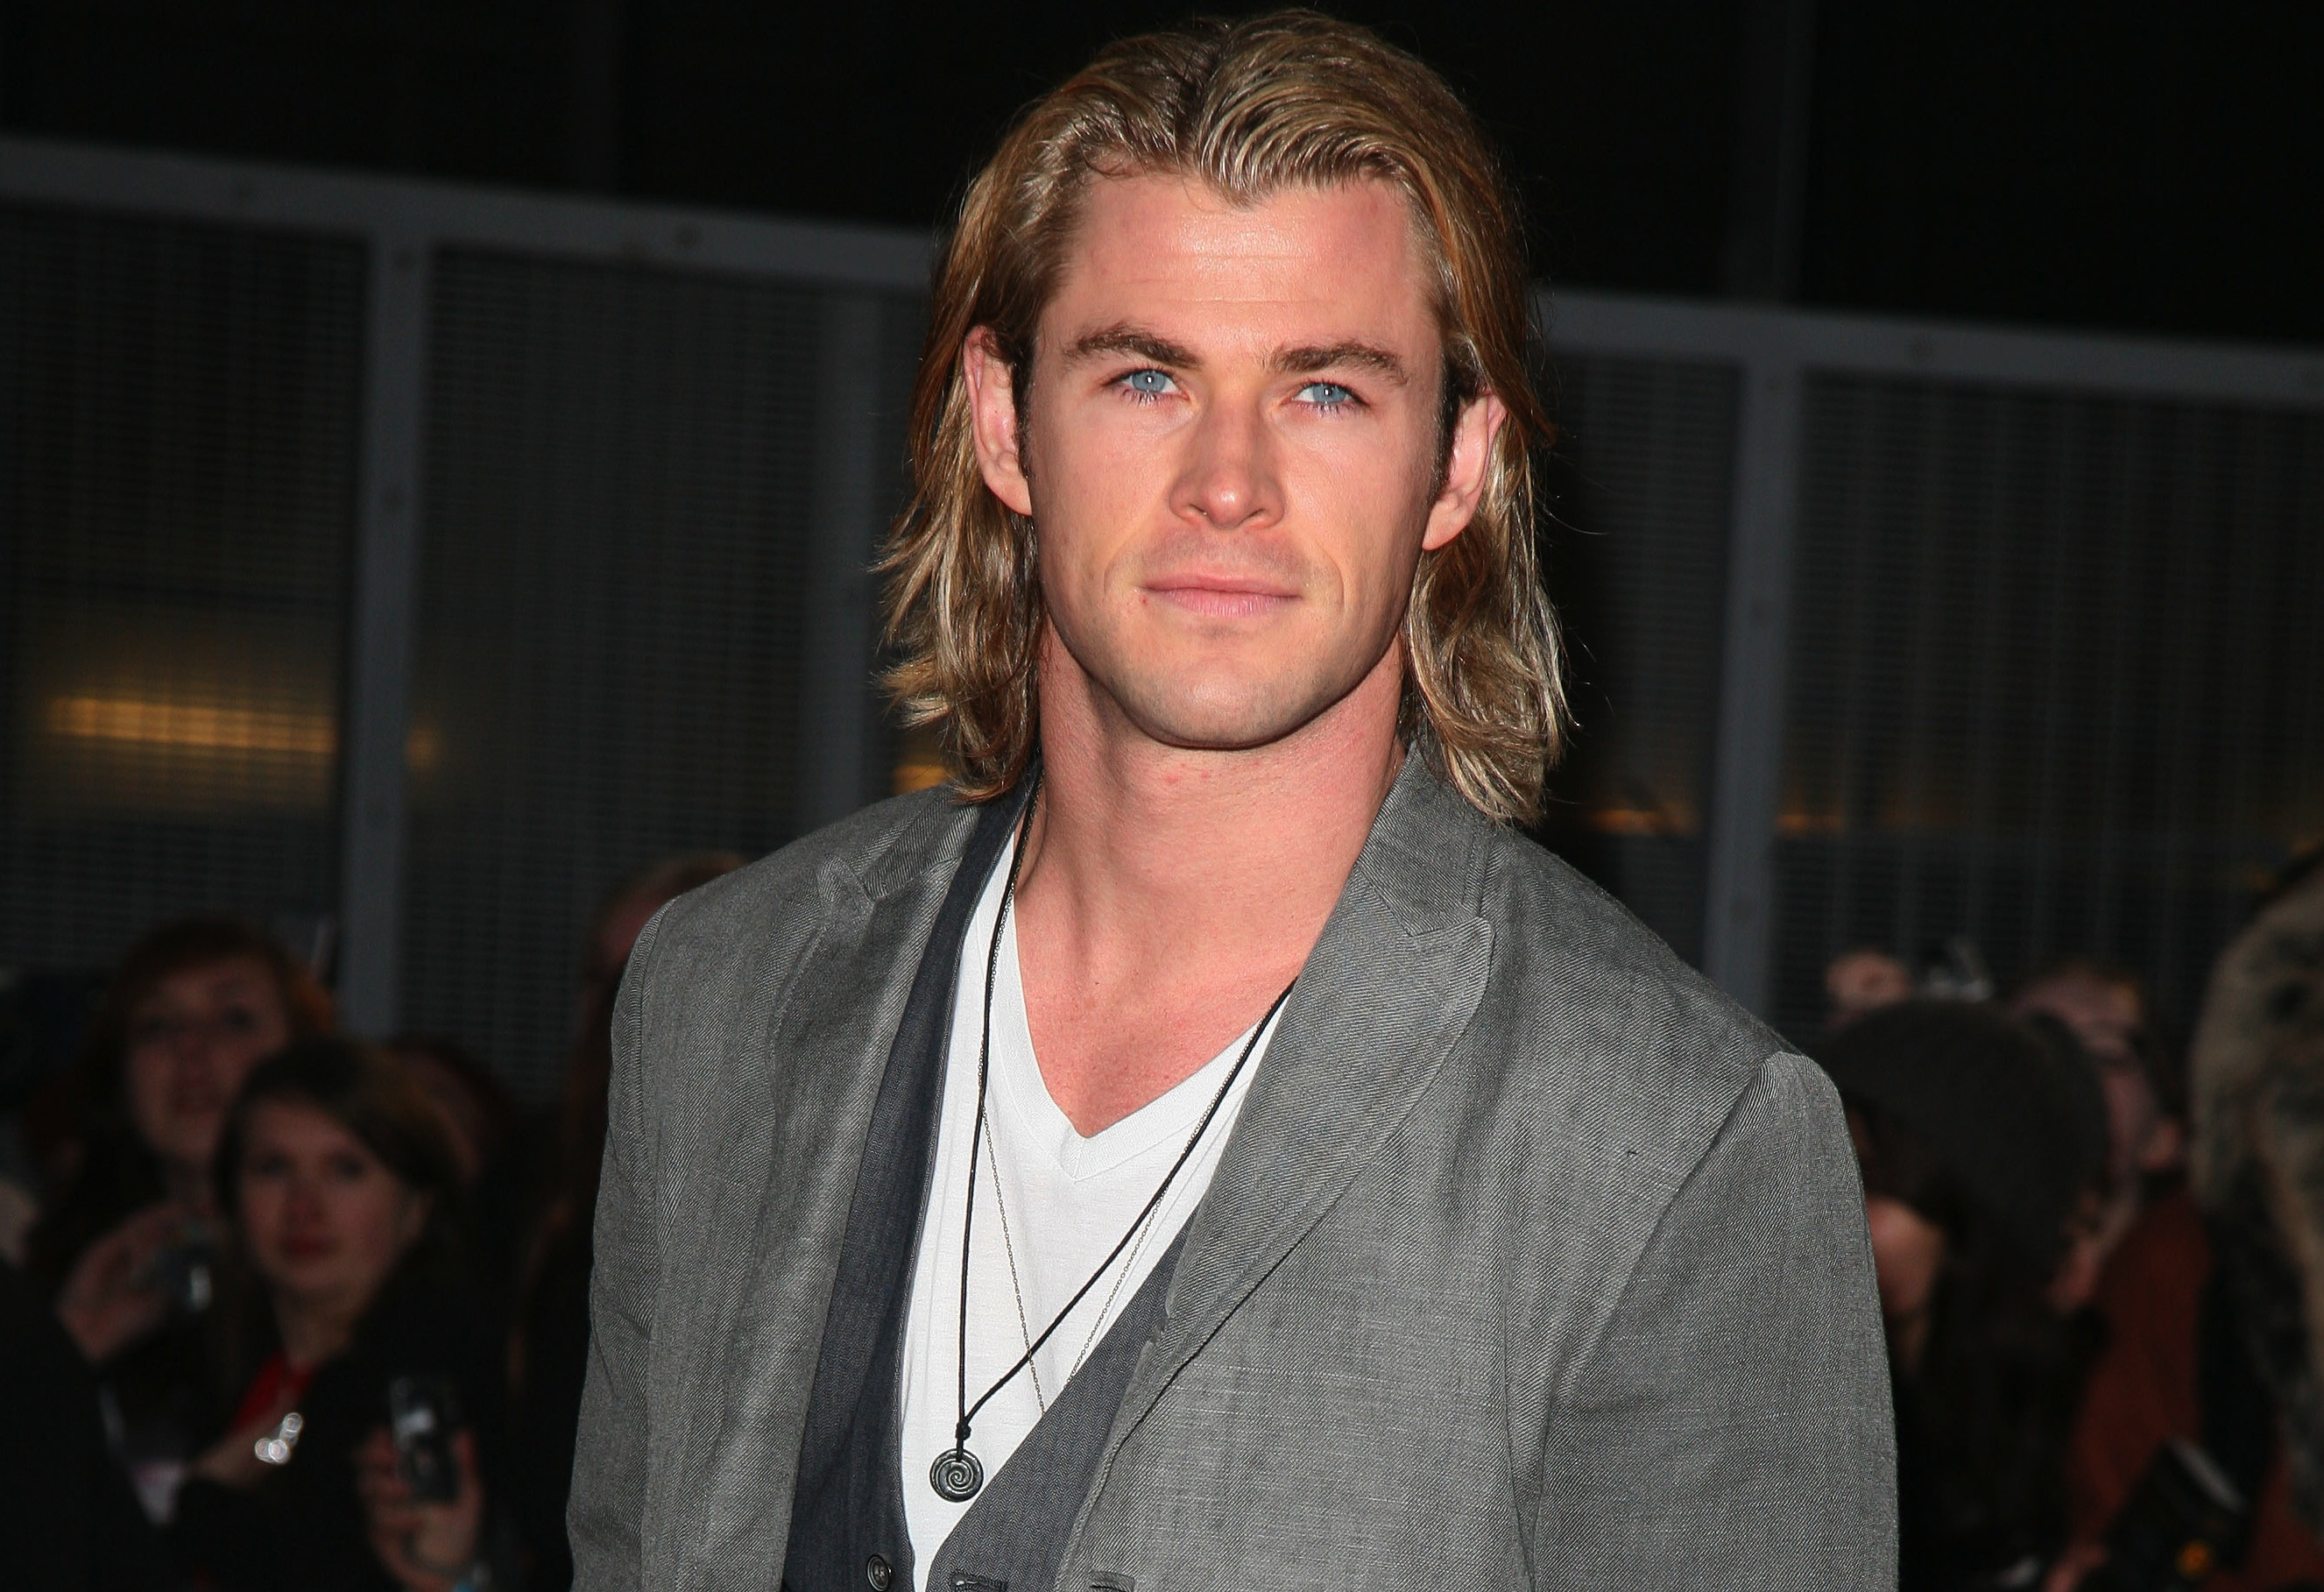 1. Chris Hemsworth